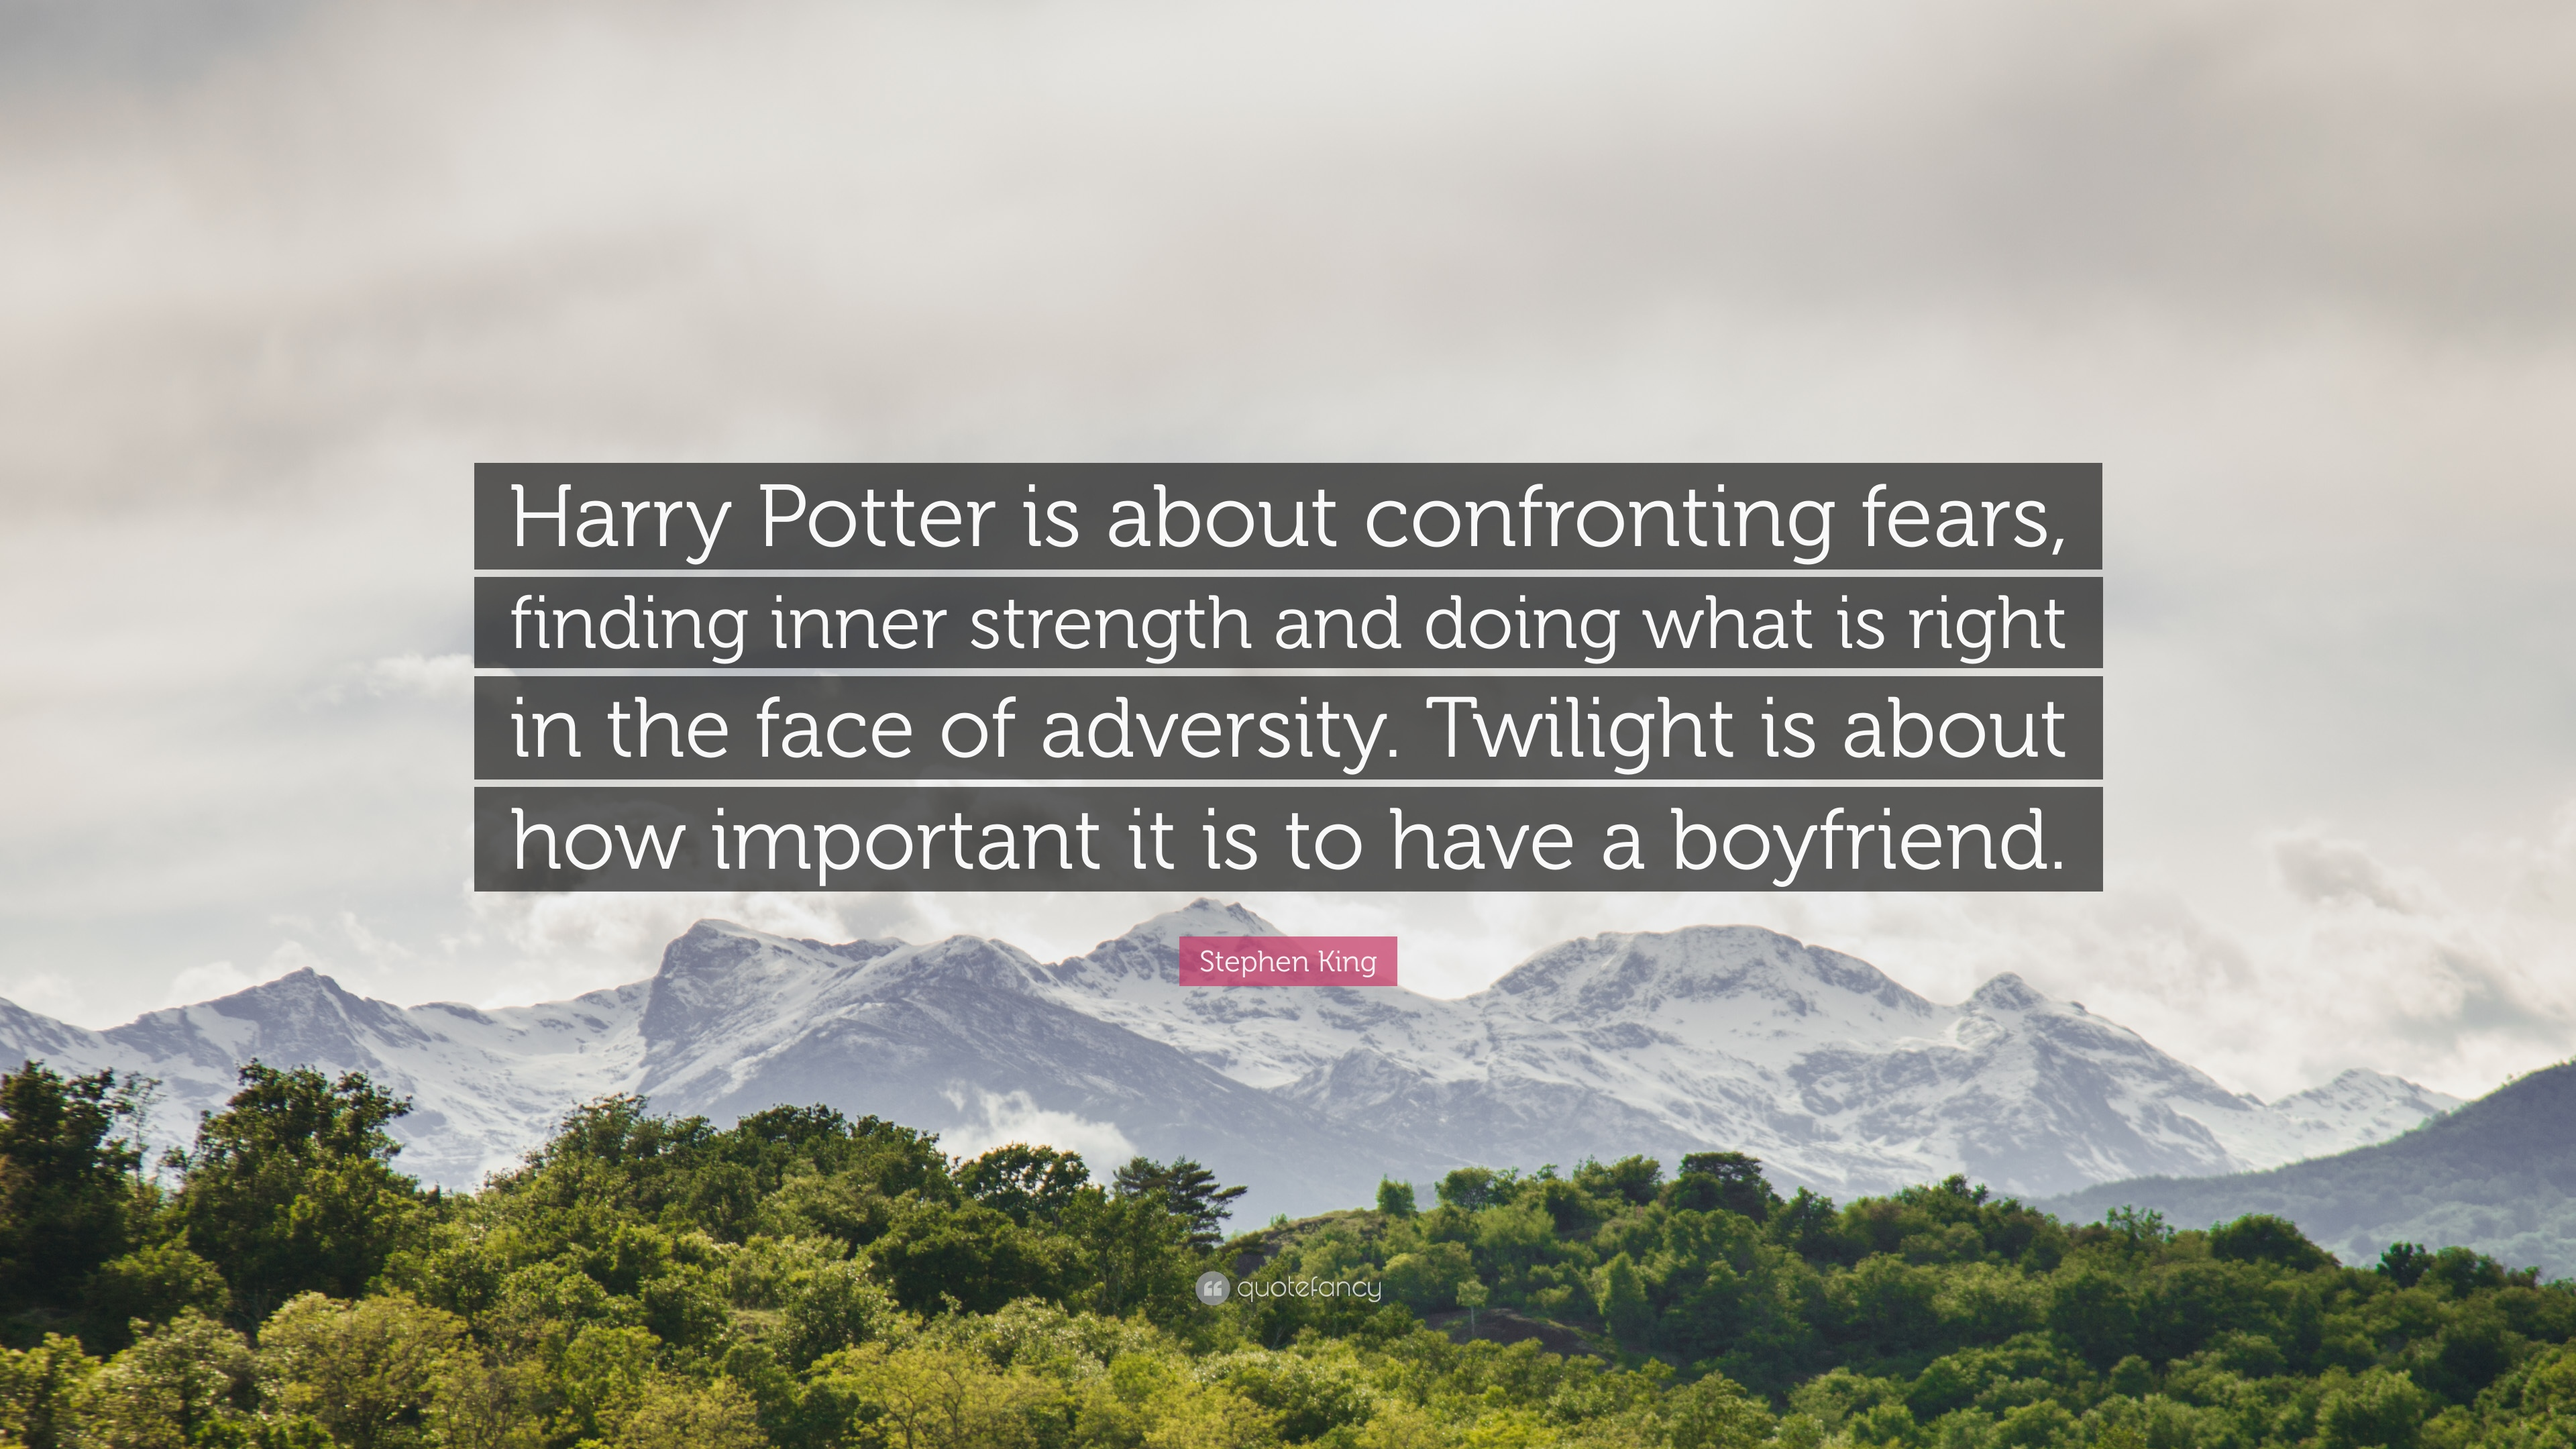 Amazing Wallpaper Harry Potter Twilight - 77704-Stephen-King-Quote-Harry-Potter-is-about-confronting-fears-finding  You Should Have_108171.jpg